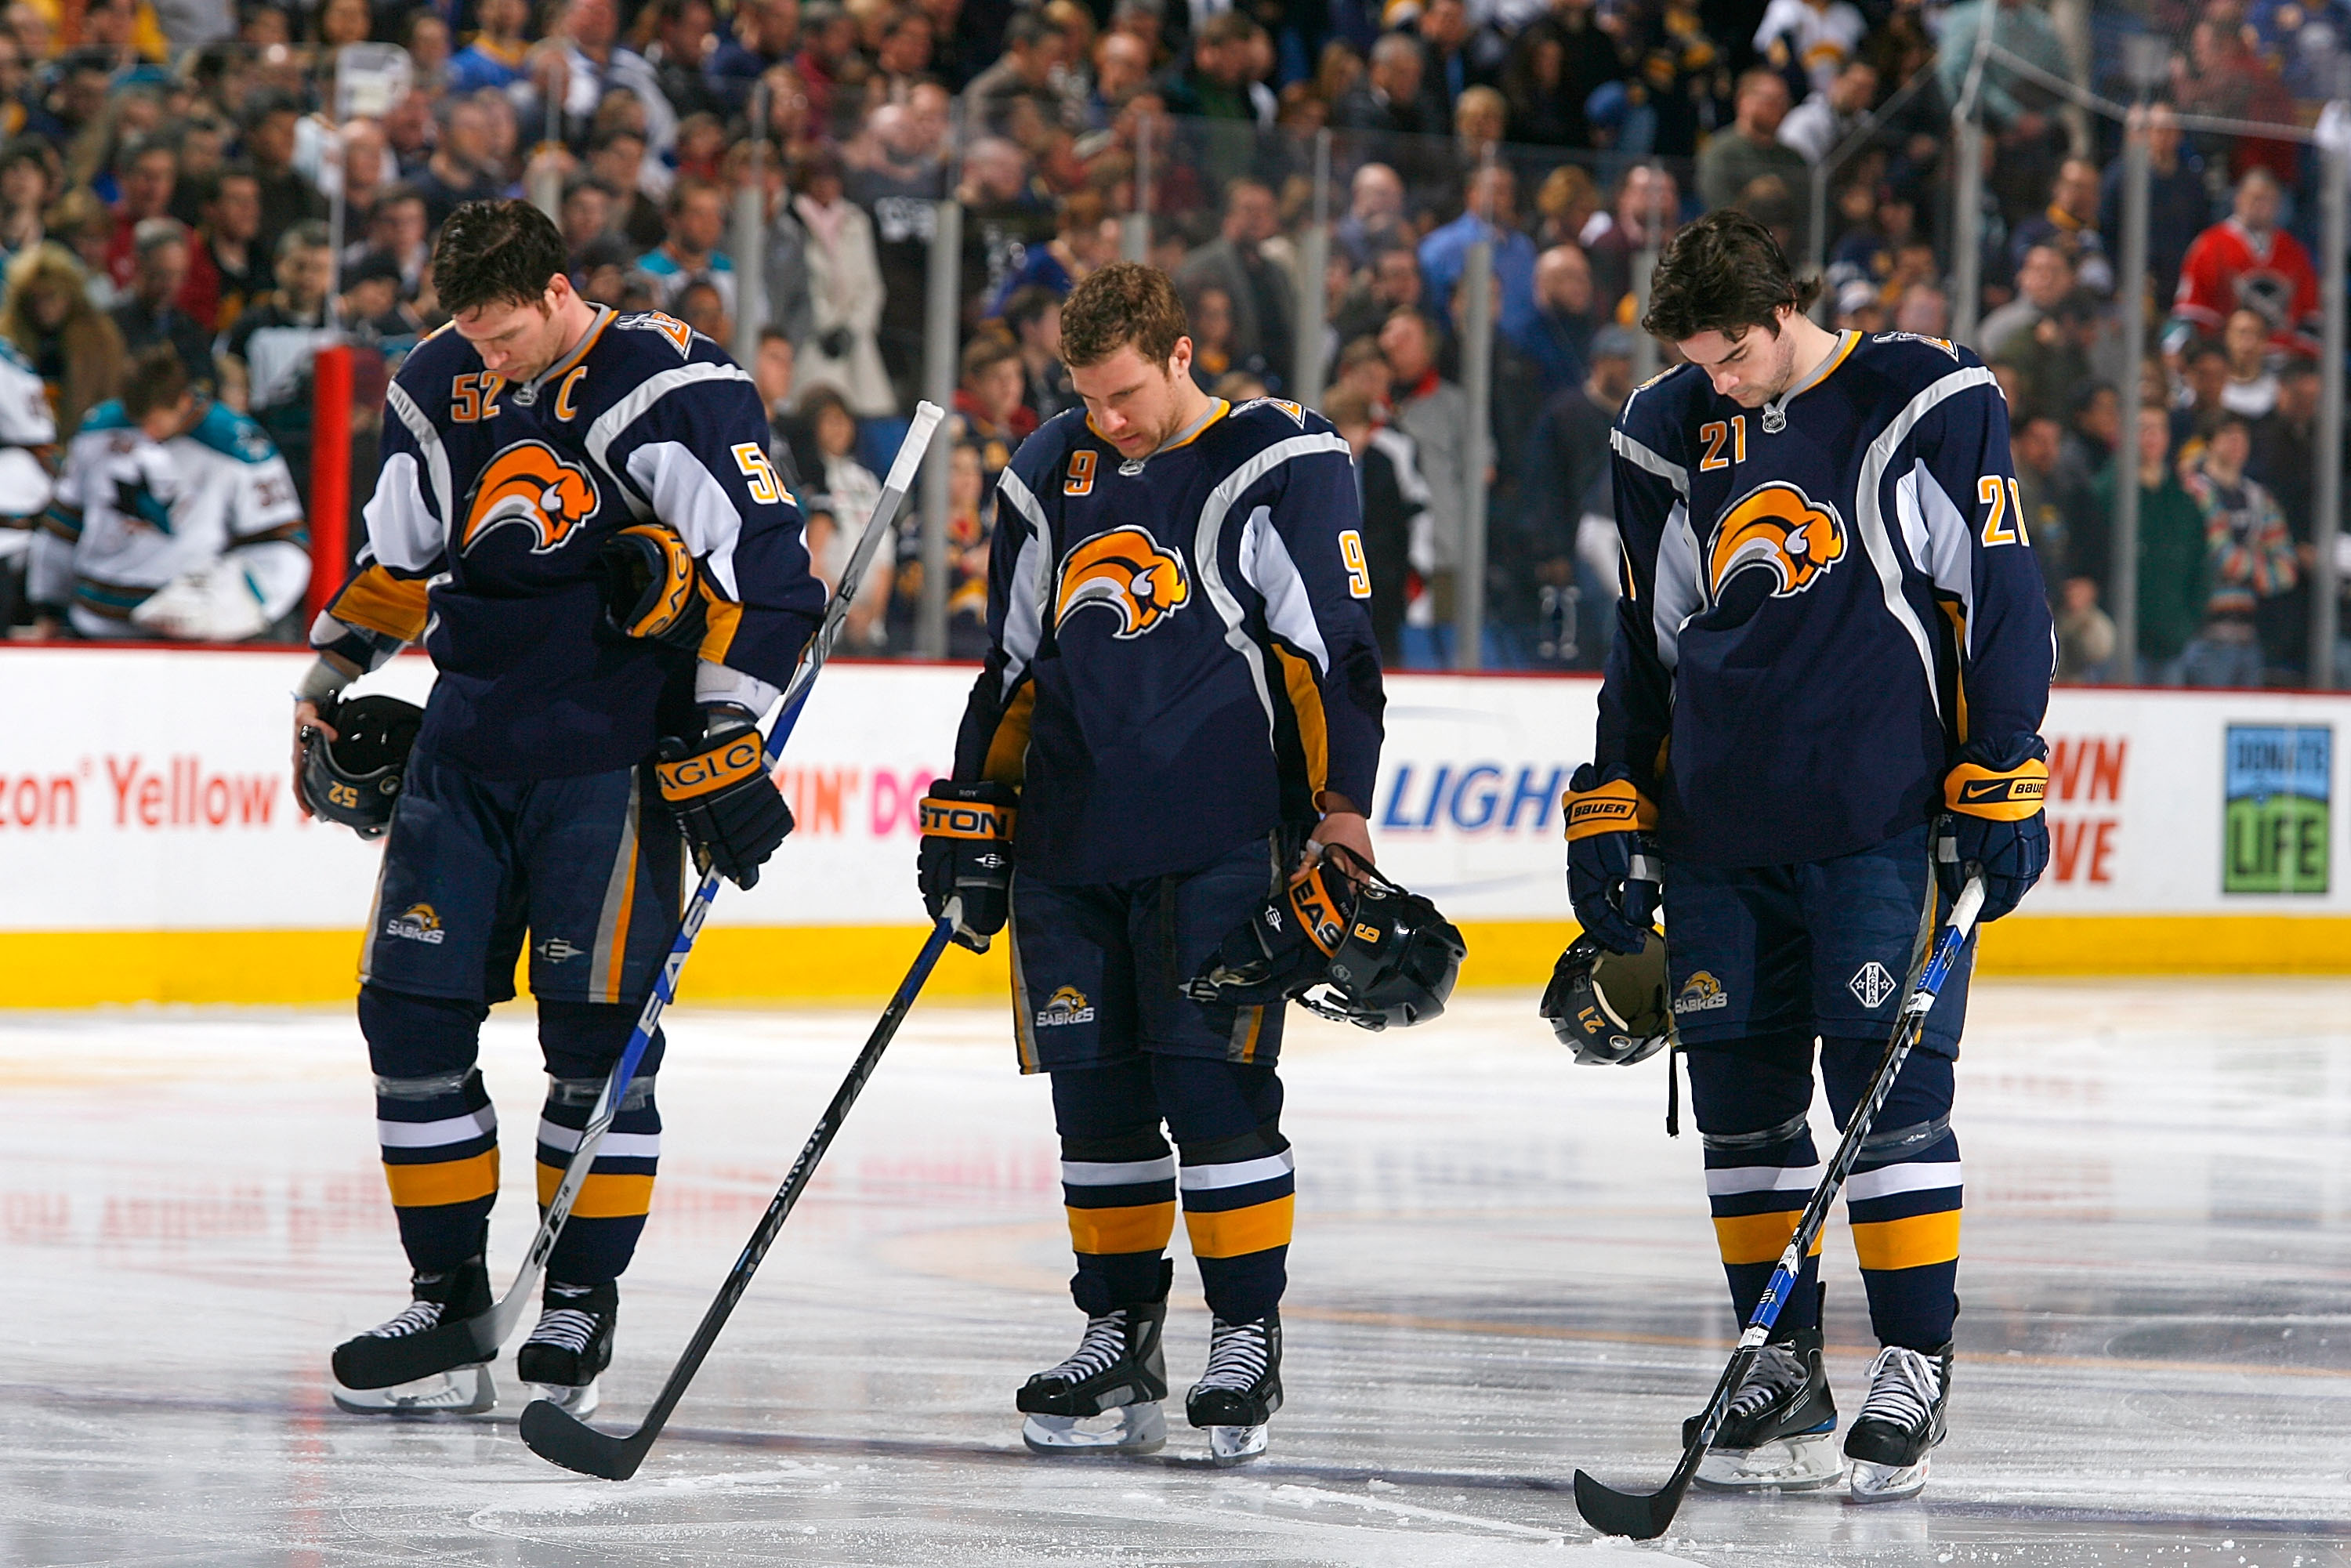 BUFFALO, NY - FEBRUARY 13: Craig Rivet #52, Derek Roy #9 and Drew Stafford #21 of the Buffalo Sabres pause for a moment of silence for the victims of Continental Connection flight 3407 prior to playing the San Jose Sharks on February 13, 2009 at HSBC Arena in Buffalo, New York. The flight crashed in the Buffalo suburb of Clarence Center on Feb 12, 2009. (Photo by Rick Stewart/Getty Images)